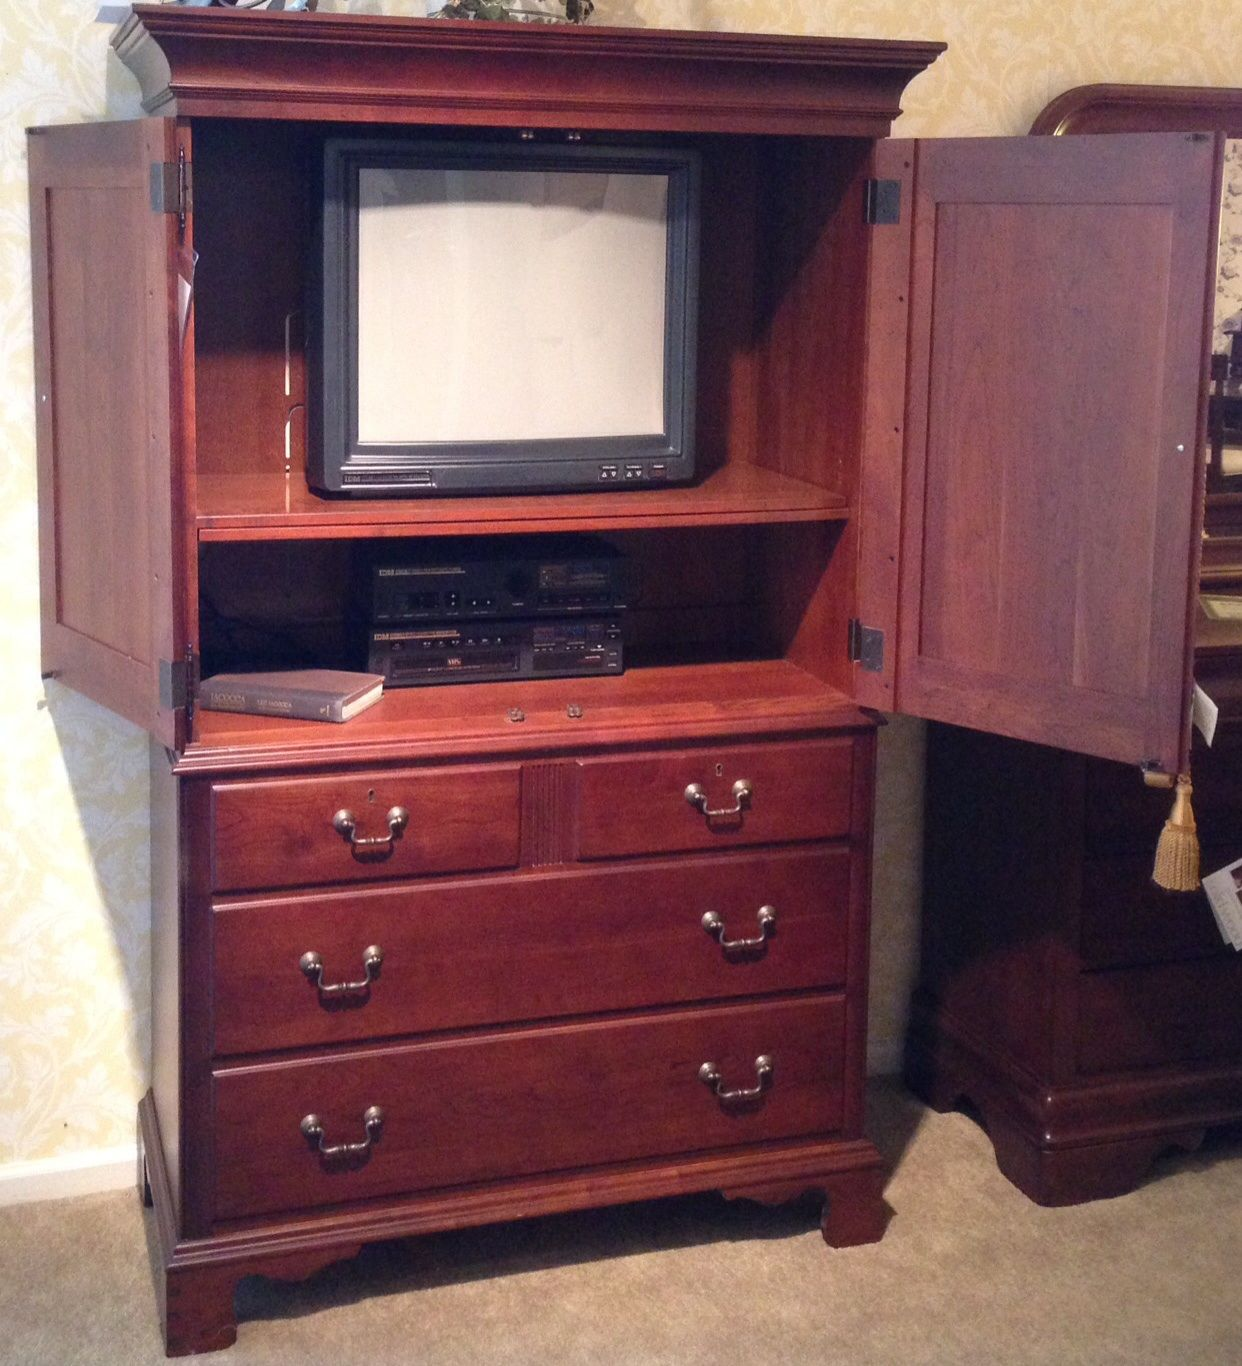 TV ARMOIRE: Solid Cherry, Fold Back Doors, 2 Adjustable Shelves, Knock